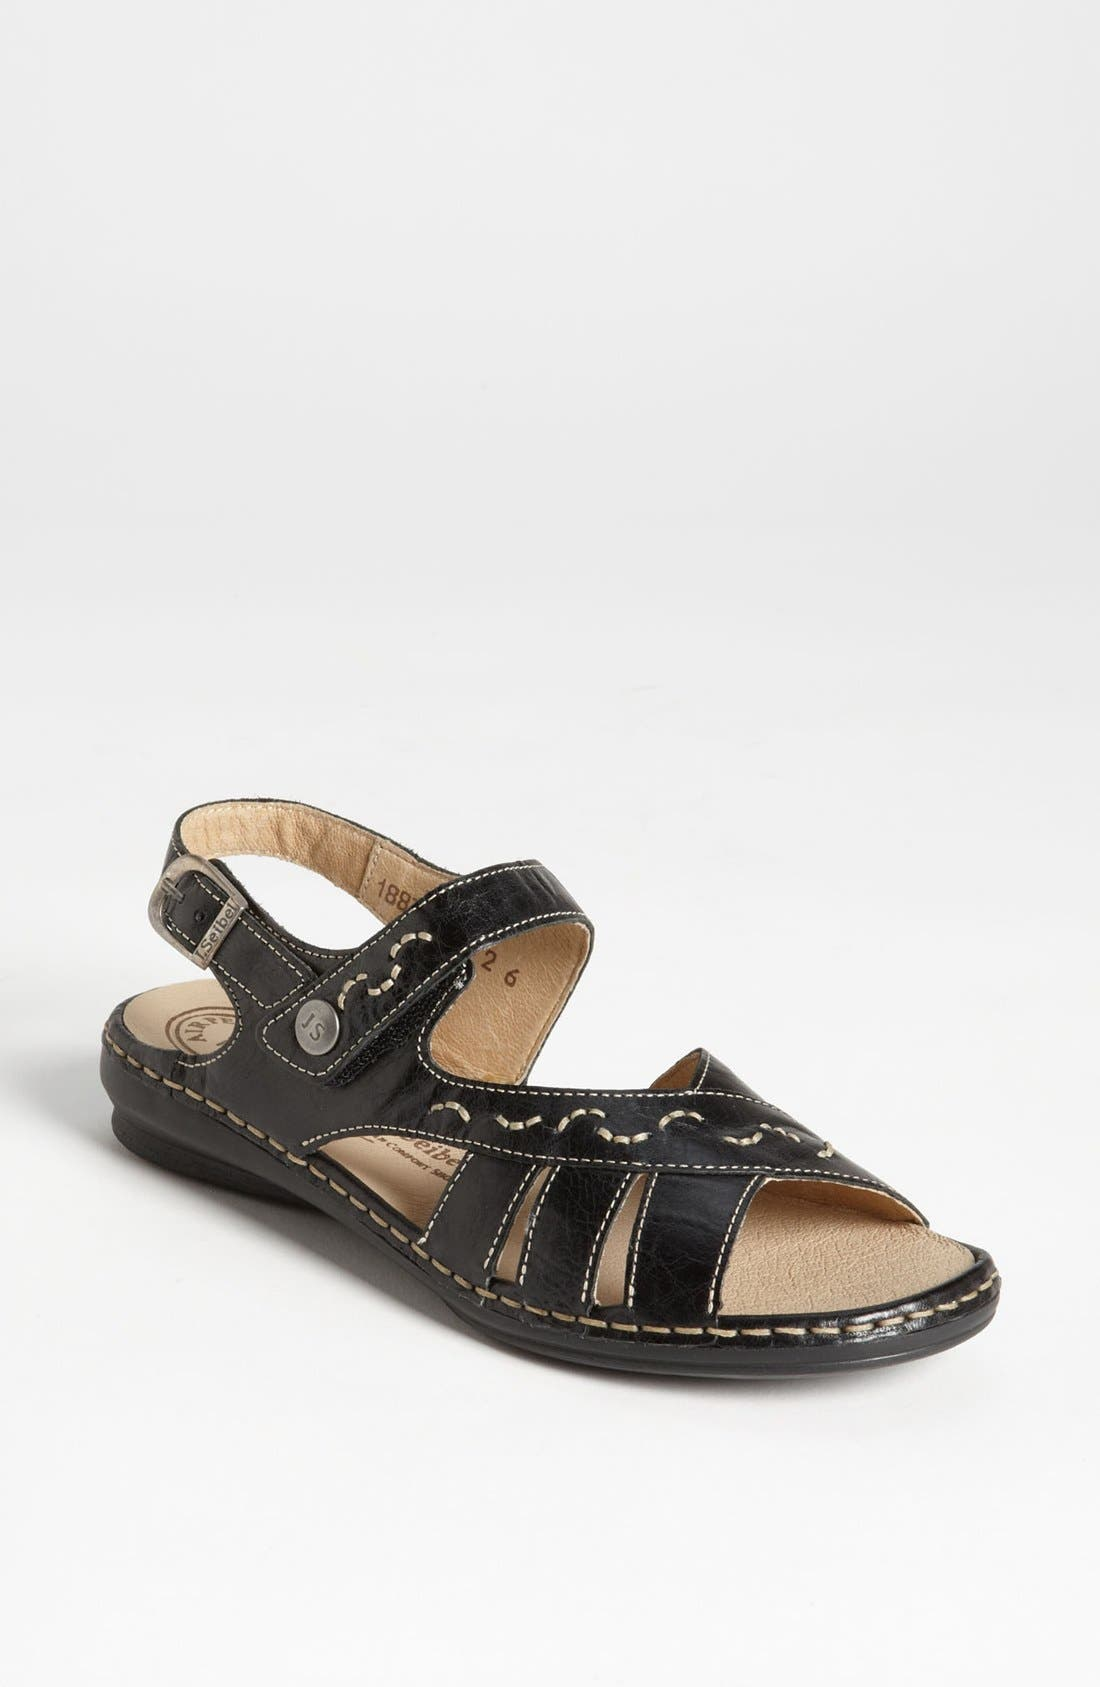 Alternate Image 1 Selected - Josef Seibel 'Grazia 04' Sandal